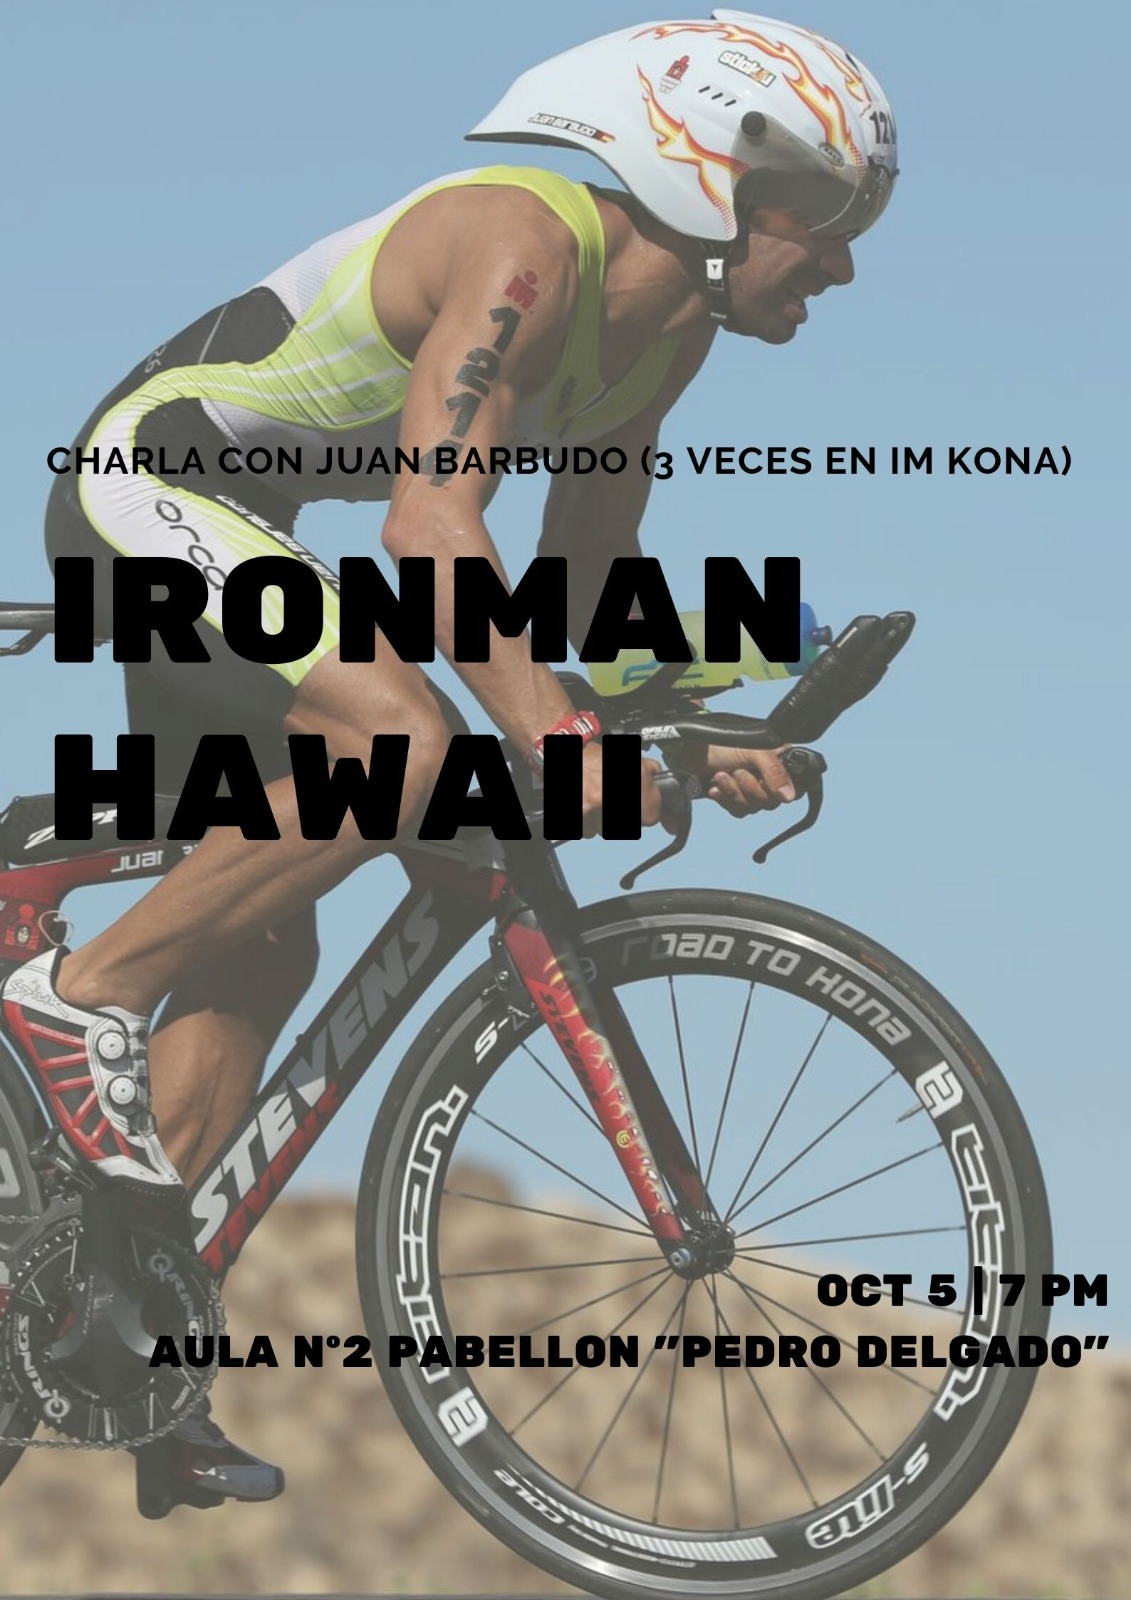 Charla-coloquio de Juan Barbudo: Ironam Hawaii